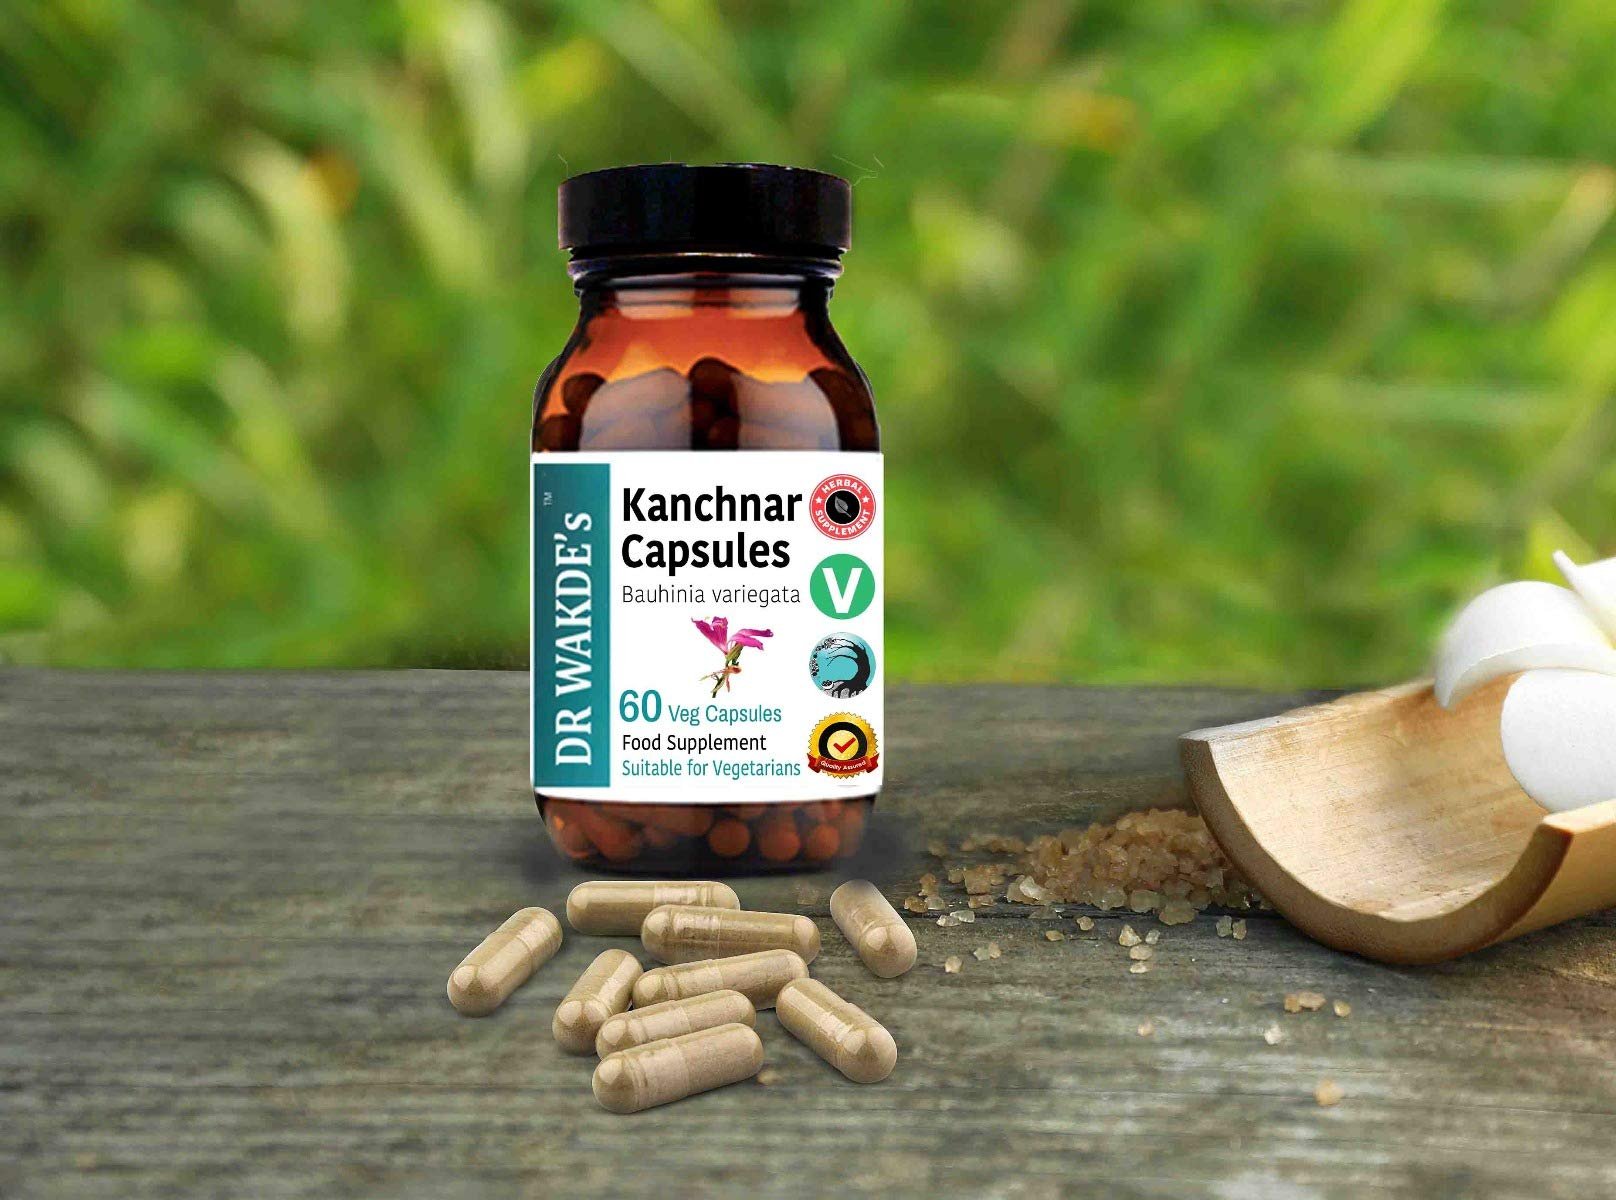 DR WAKDE'S® Kanchnar Capsules ((Bauhinia variegata) I 100% Herbal I 60 Veggie Capsules I Ayurvedic Supplement I FREE SHIPPING on multiples I Quantity Discounts I Same Day Dispatch by DR WAKDE'S Natural Health Care, London